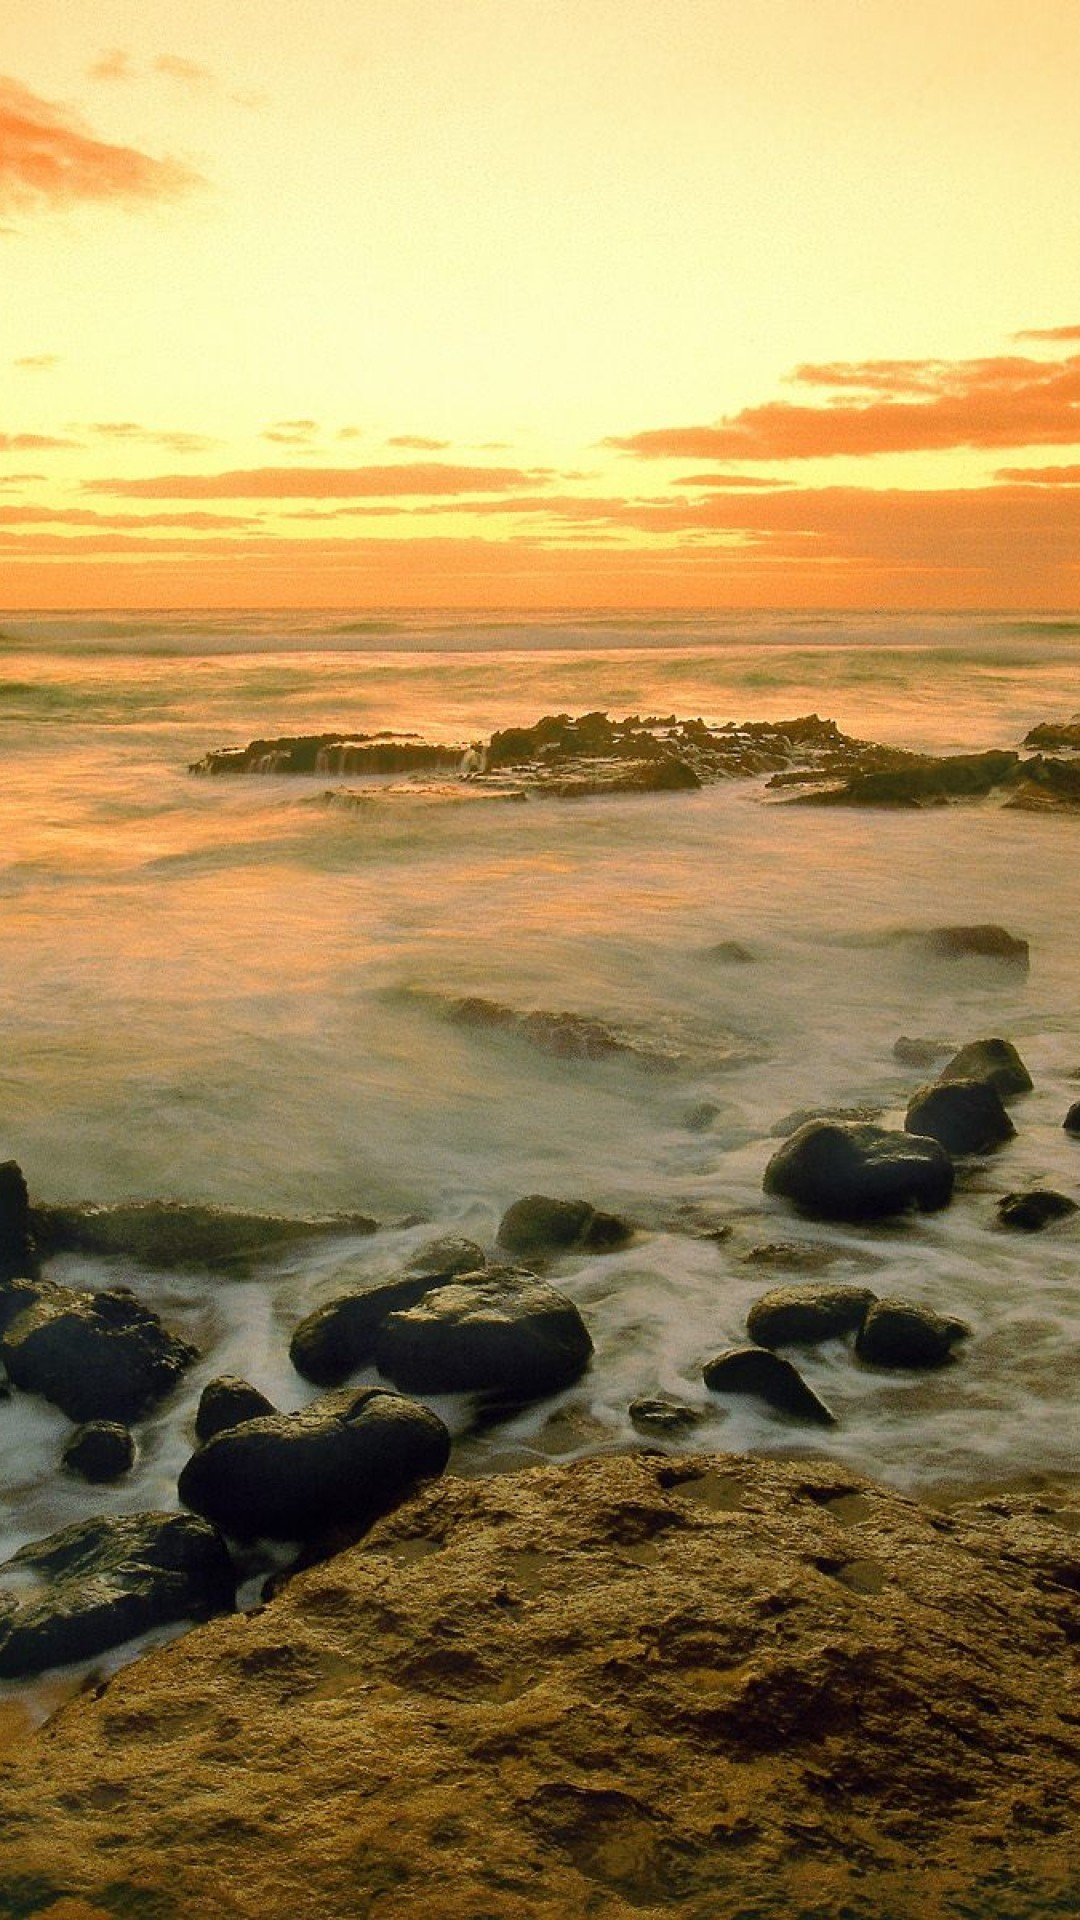 Preview wallpaper hawaii, morning, sea, sand, stones 1080×1920